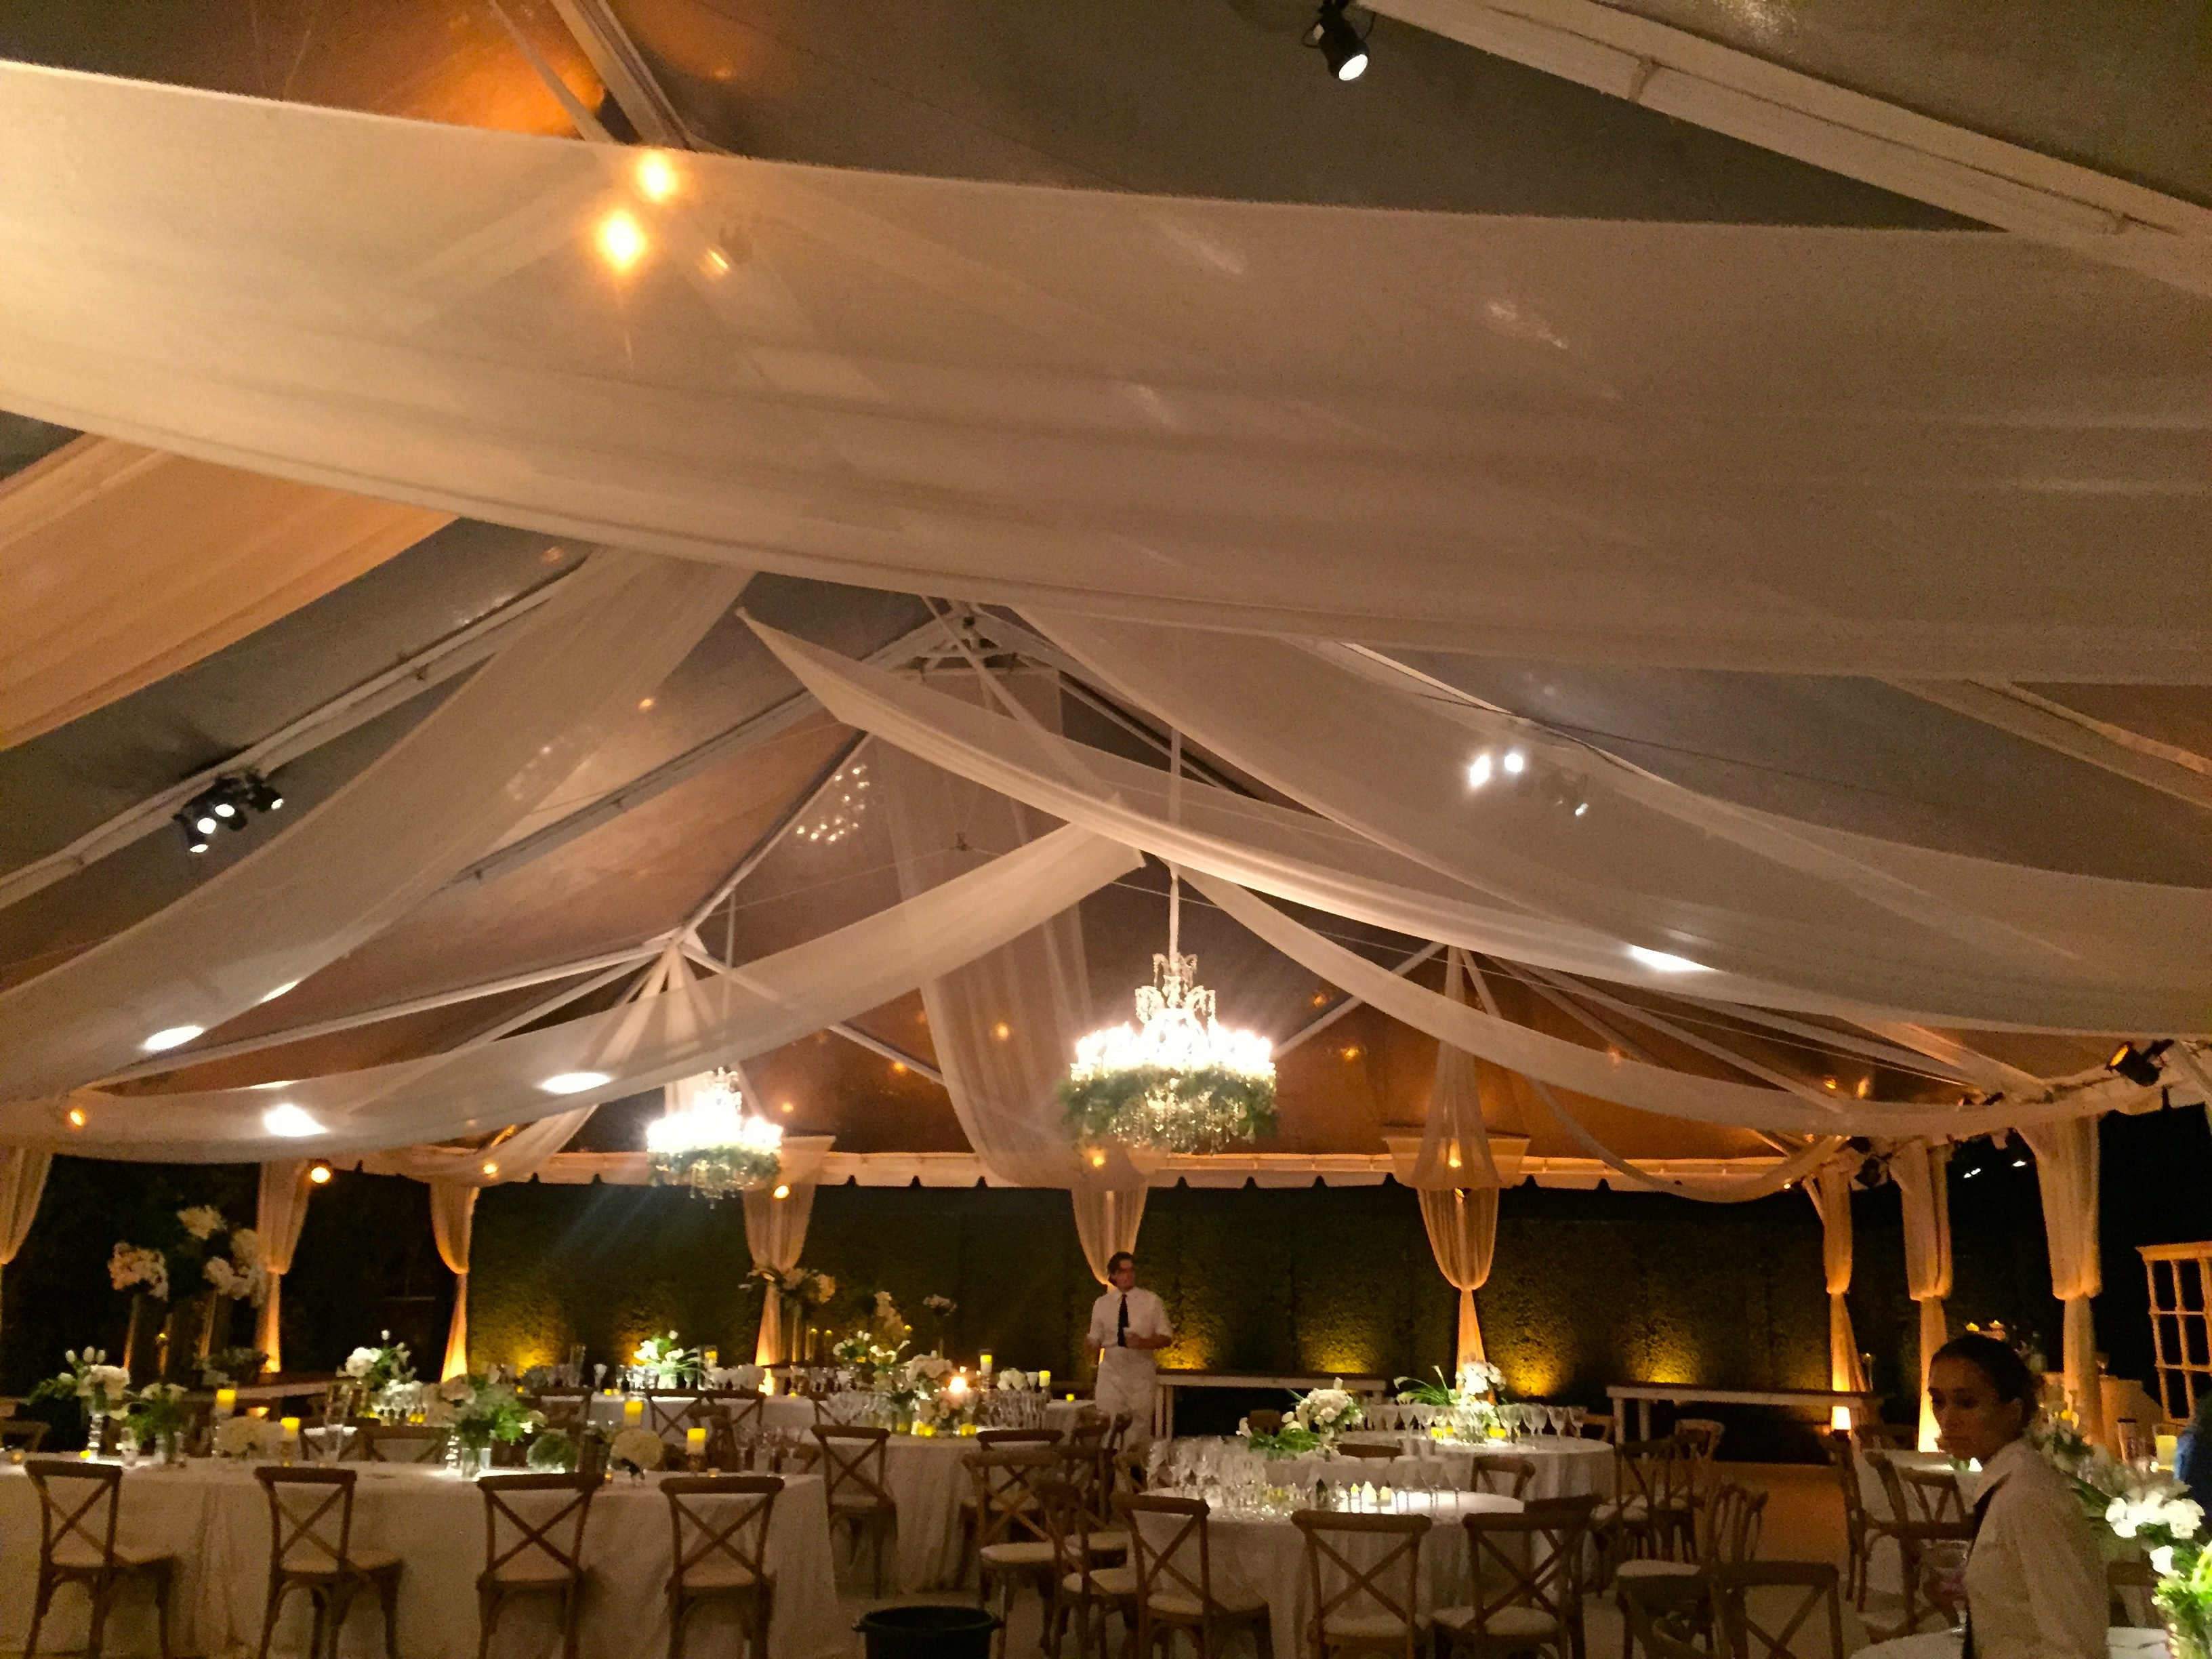 hang dsc for at and conference project stage to vodafone events ceiling drape install drapery how drapes hire event